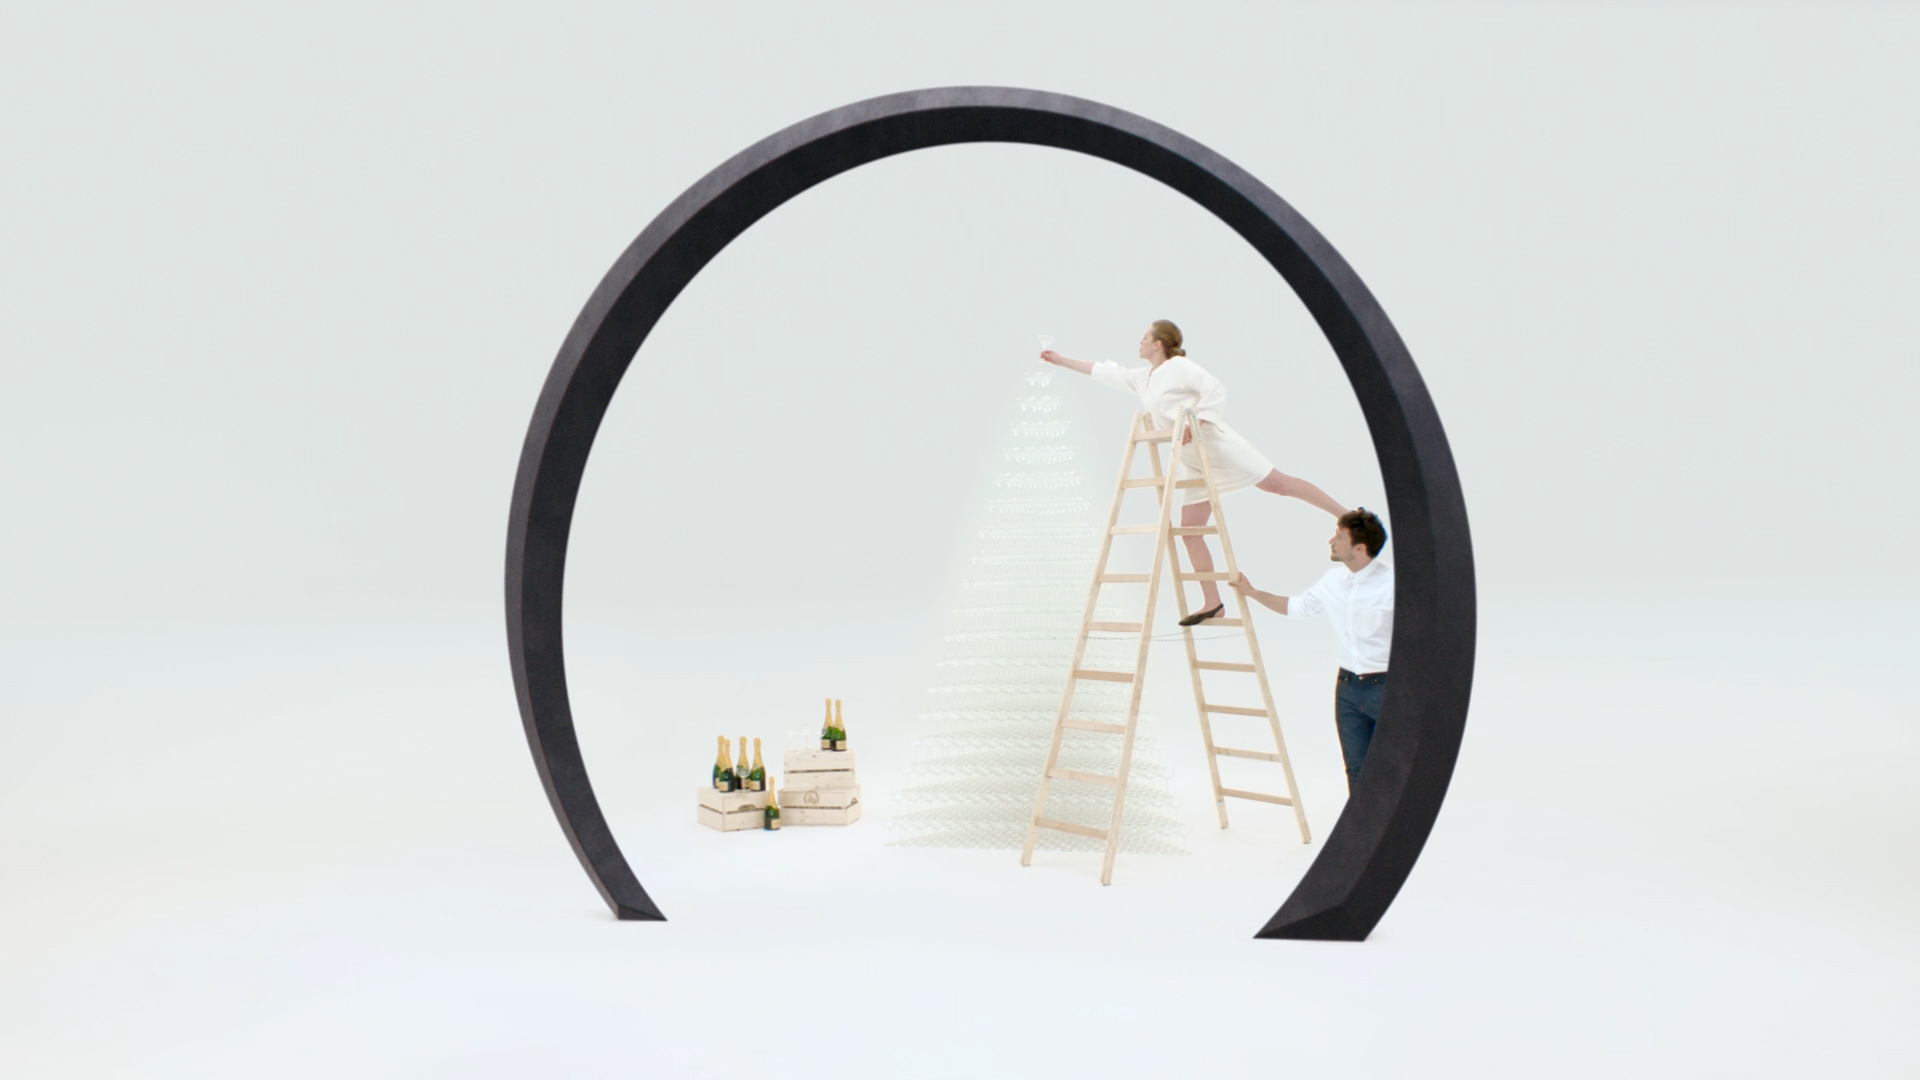 ADULT — Lernert & Sander